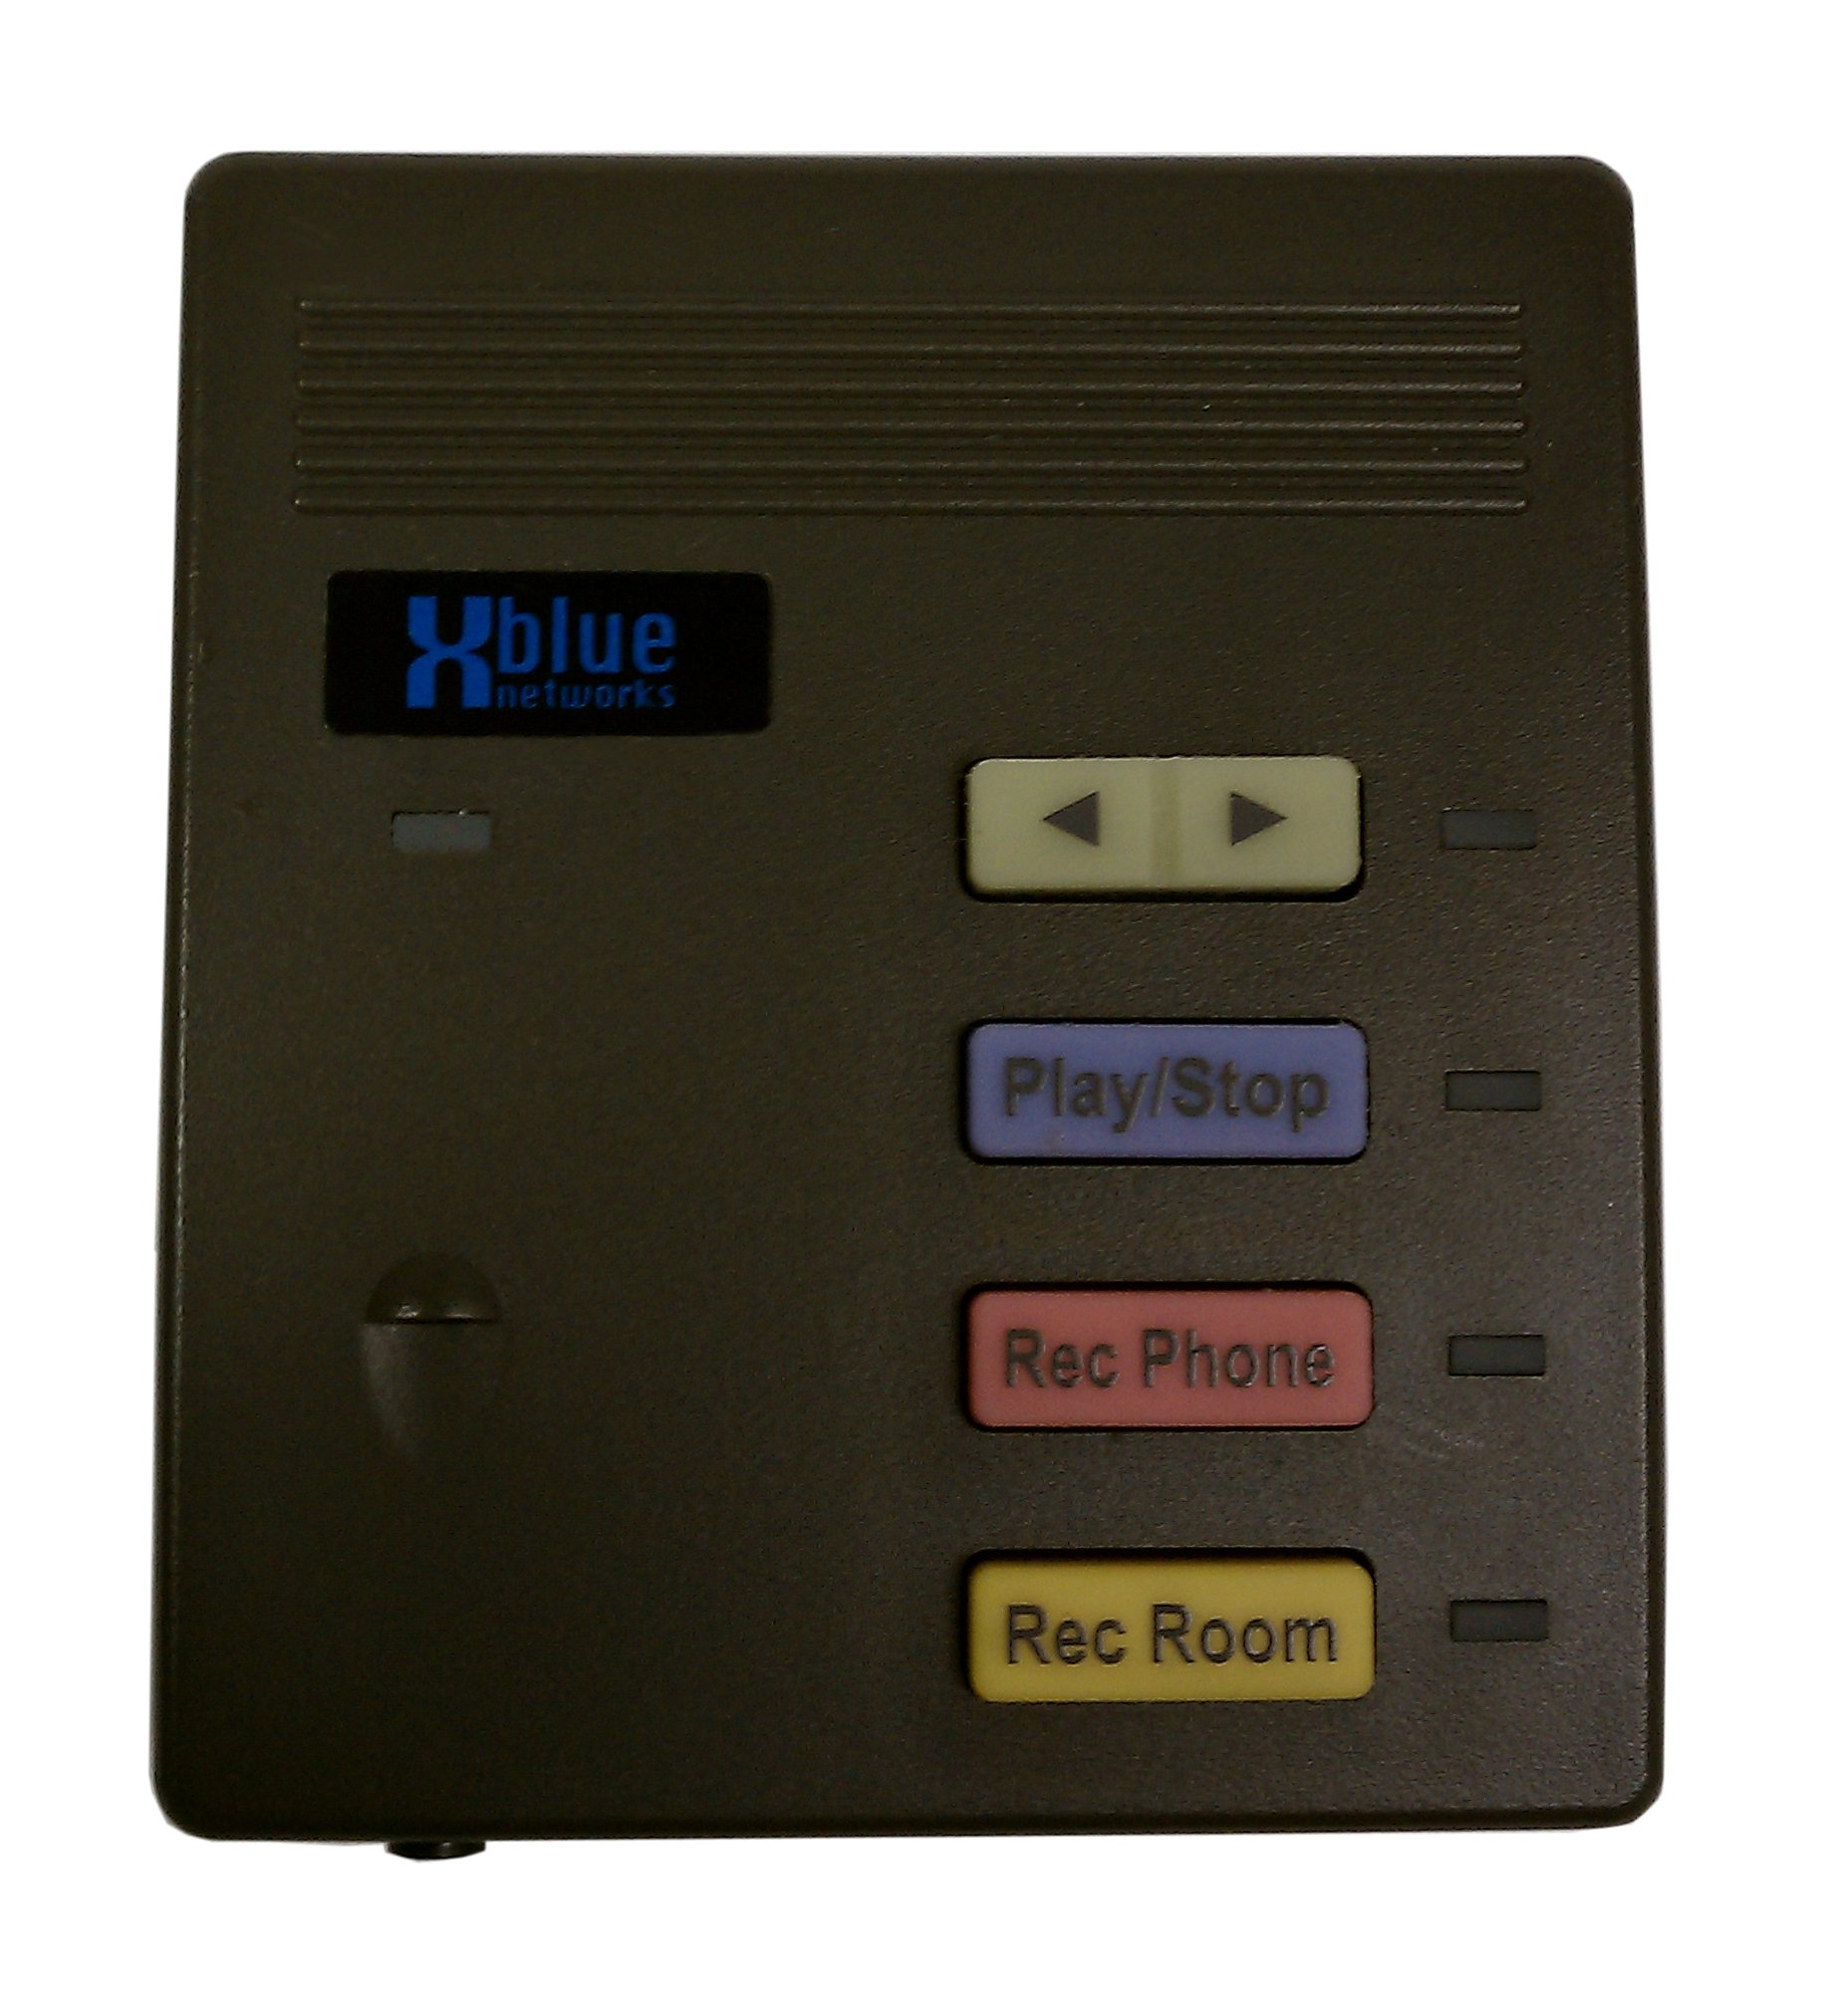 XBLUE X7 USB Call Recorder, Cocoa (2499-01) by Xblue